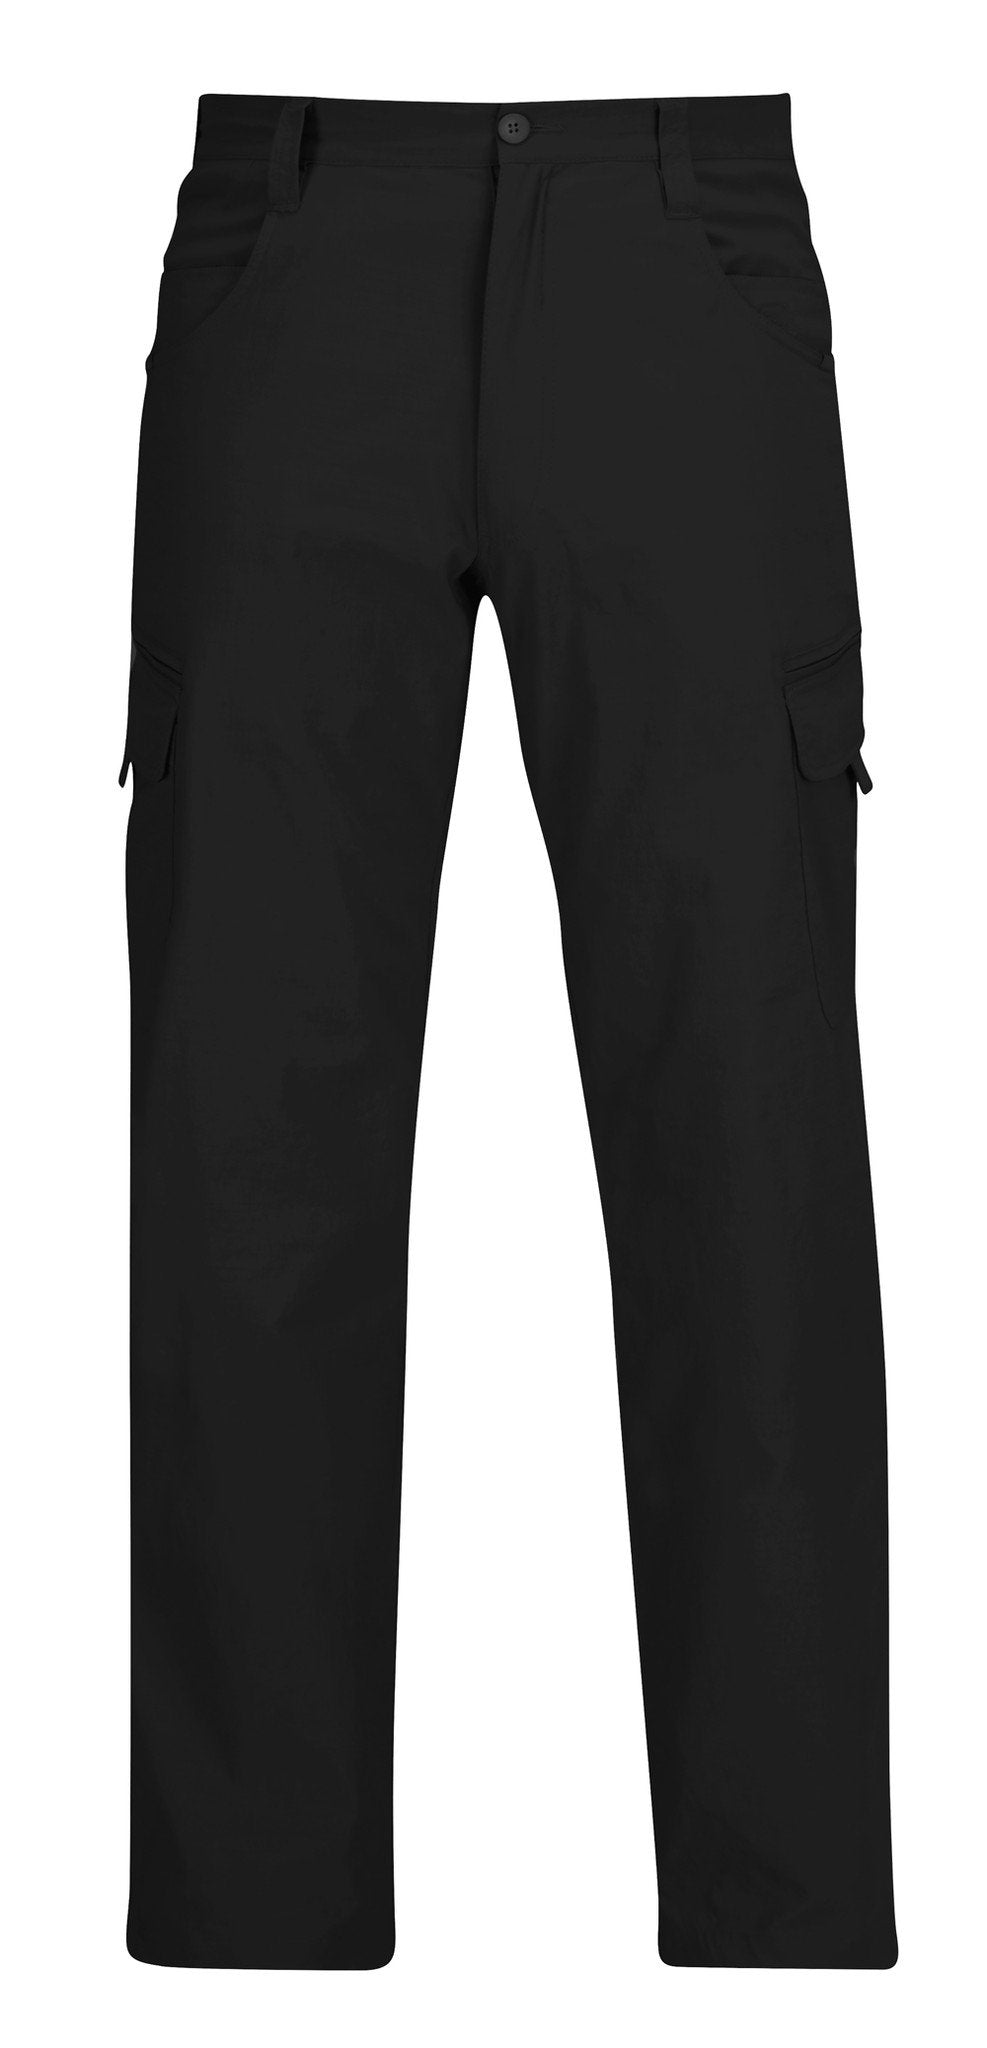 Propper Summerweight Tactical Pant - Black - mtrsuperstore